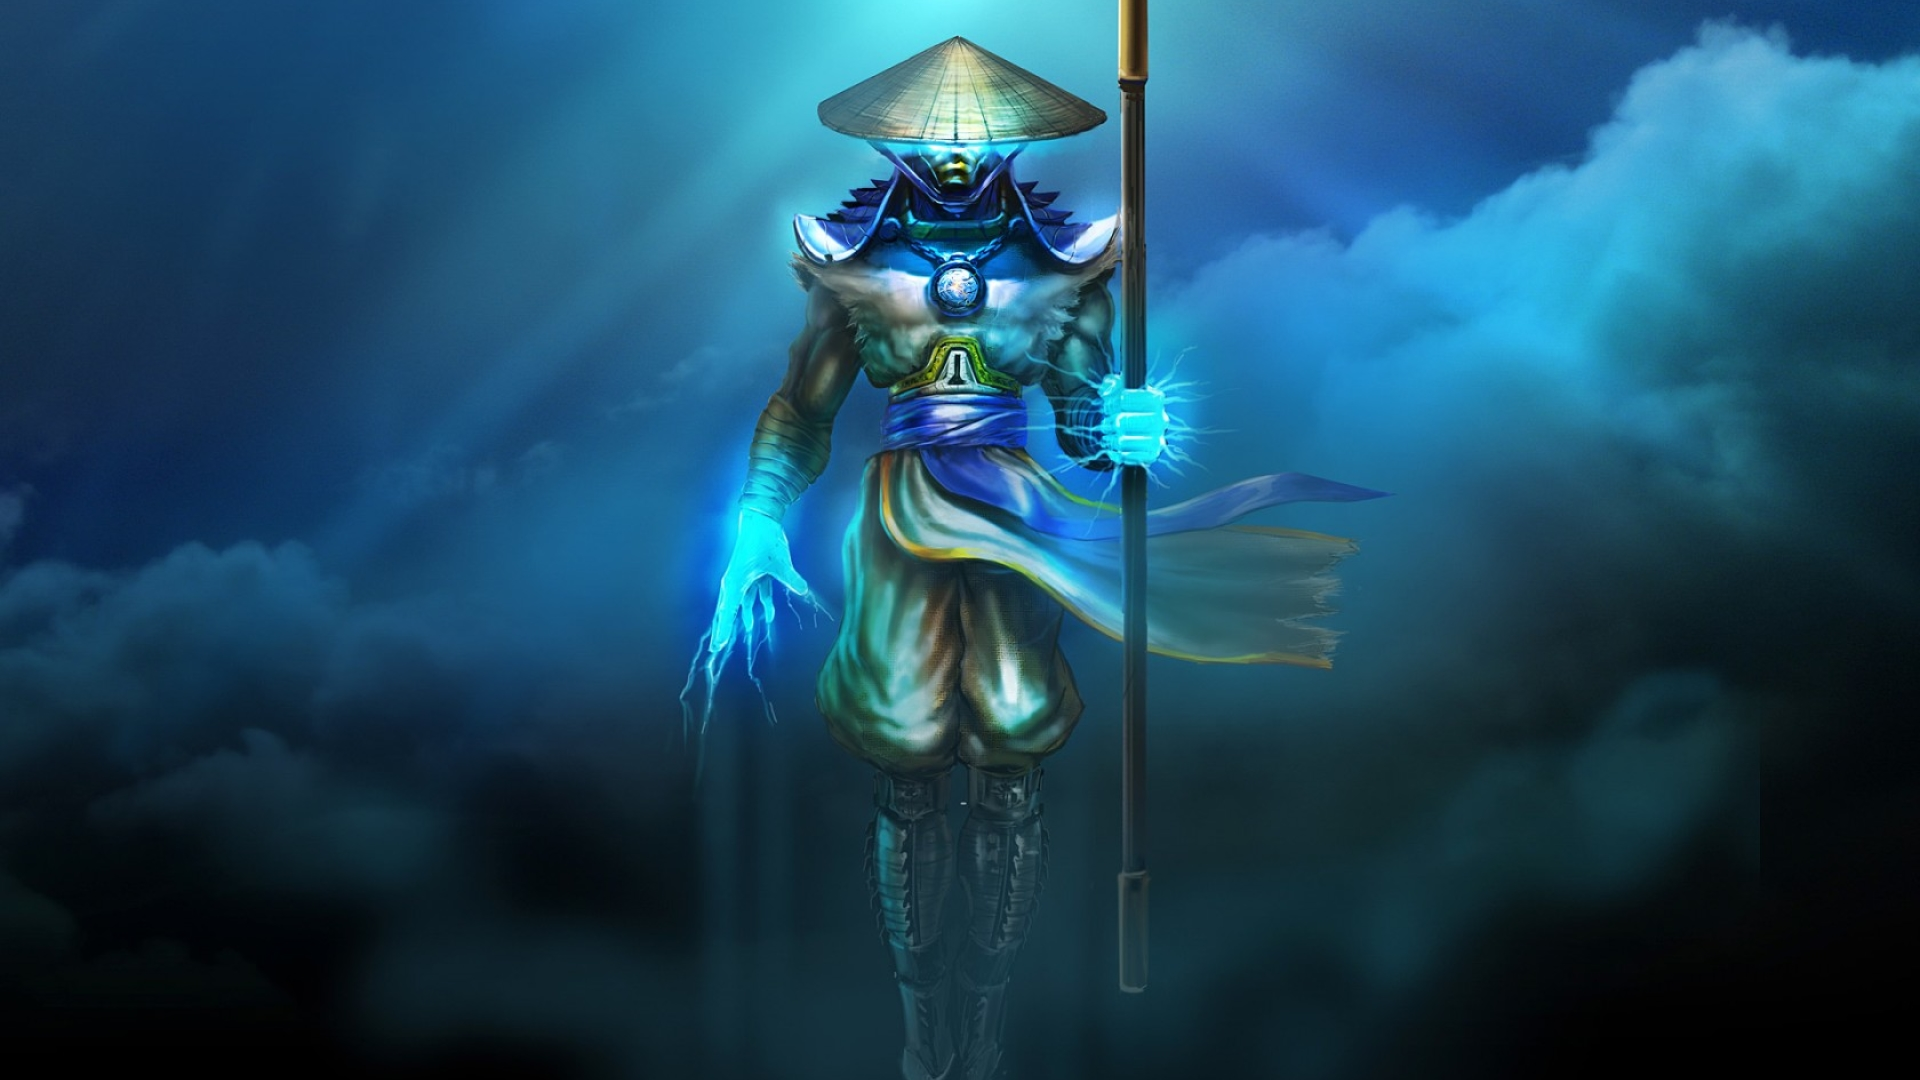 1920x1080 Mortal Kombat Raiden Mk 1080p Laptop Full Hd Wallpaper